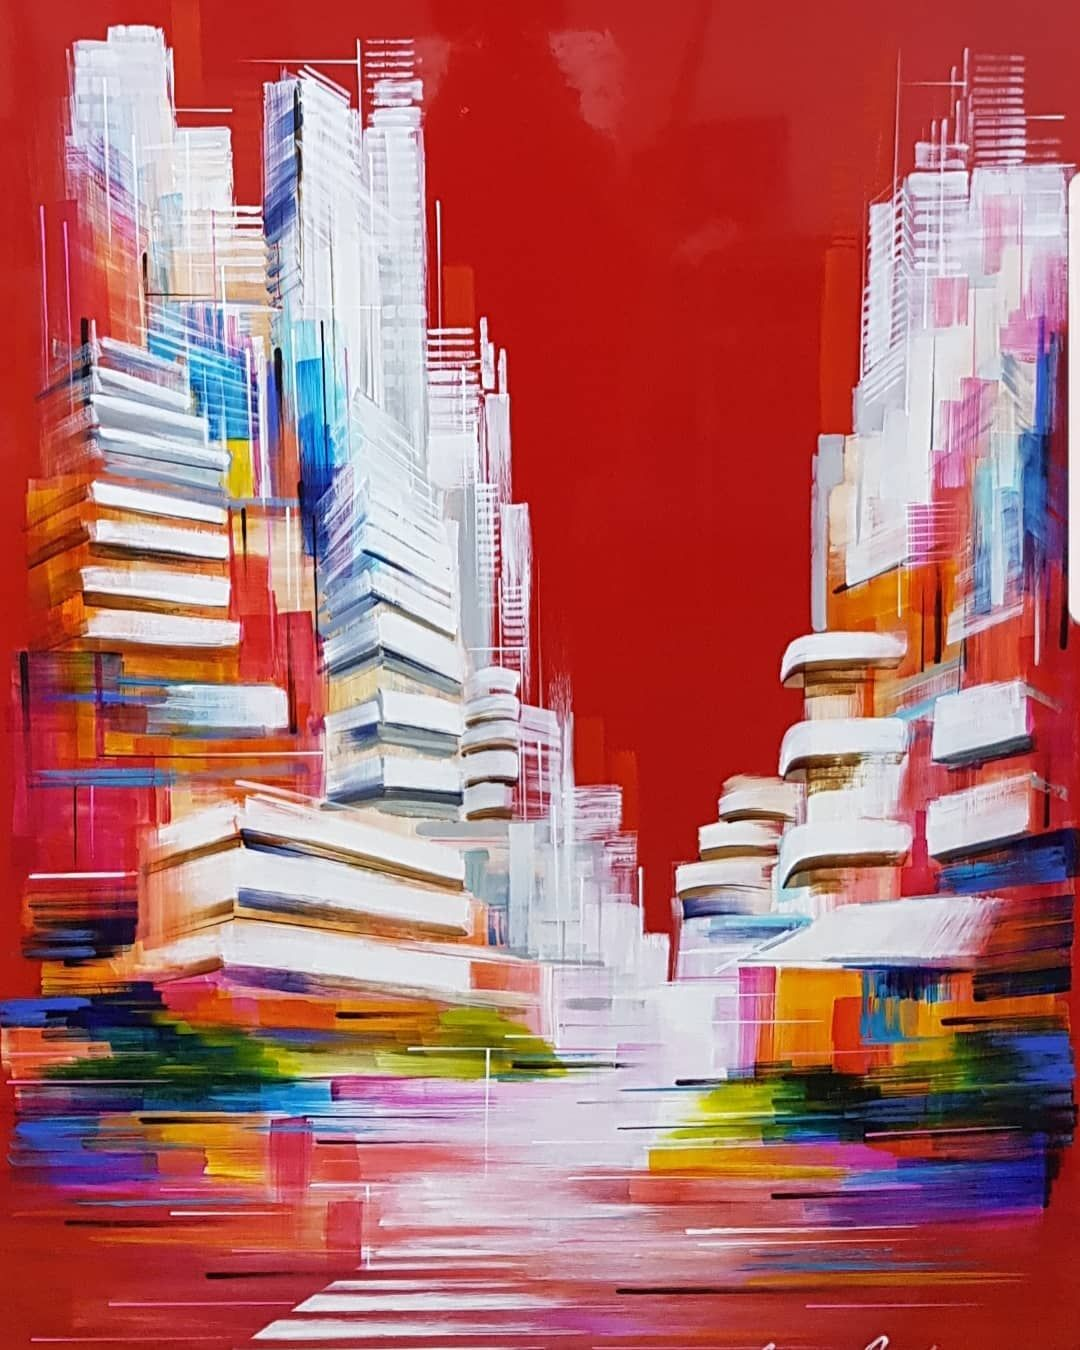 Lacquer On Aluminium Painting Www Adriananaveh Com Tel Aviv In Red Red Painting Telaviv Urban Cityscape Abstra In 2020 Red Painting Cityscape Painting Abstract Artwork